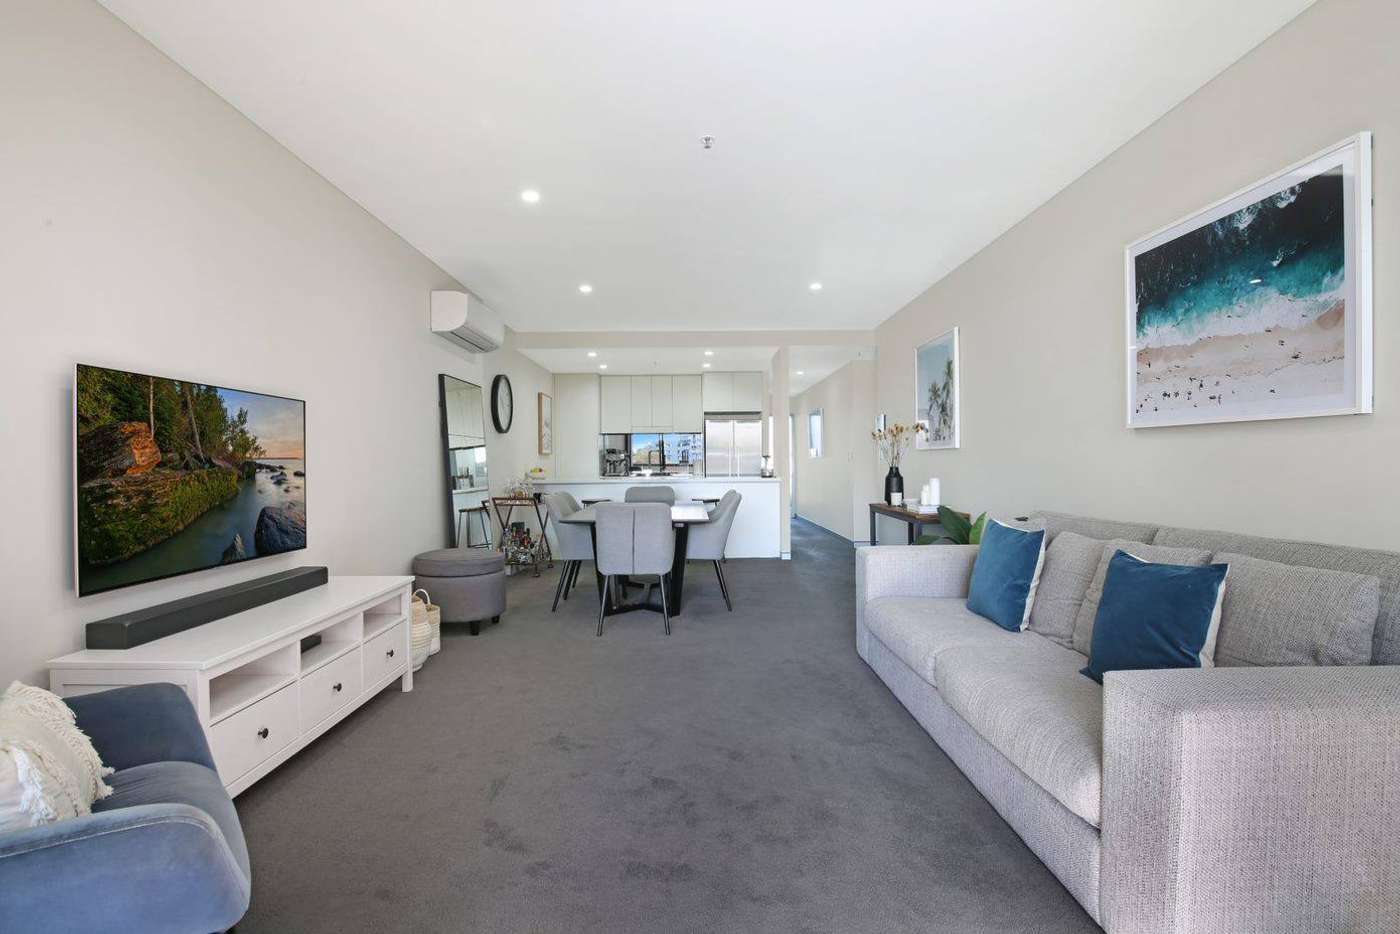 Main view of Homely apartment listing, 405/28 Burelli Street, Wollongong NSW 2500